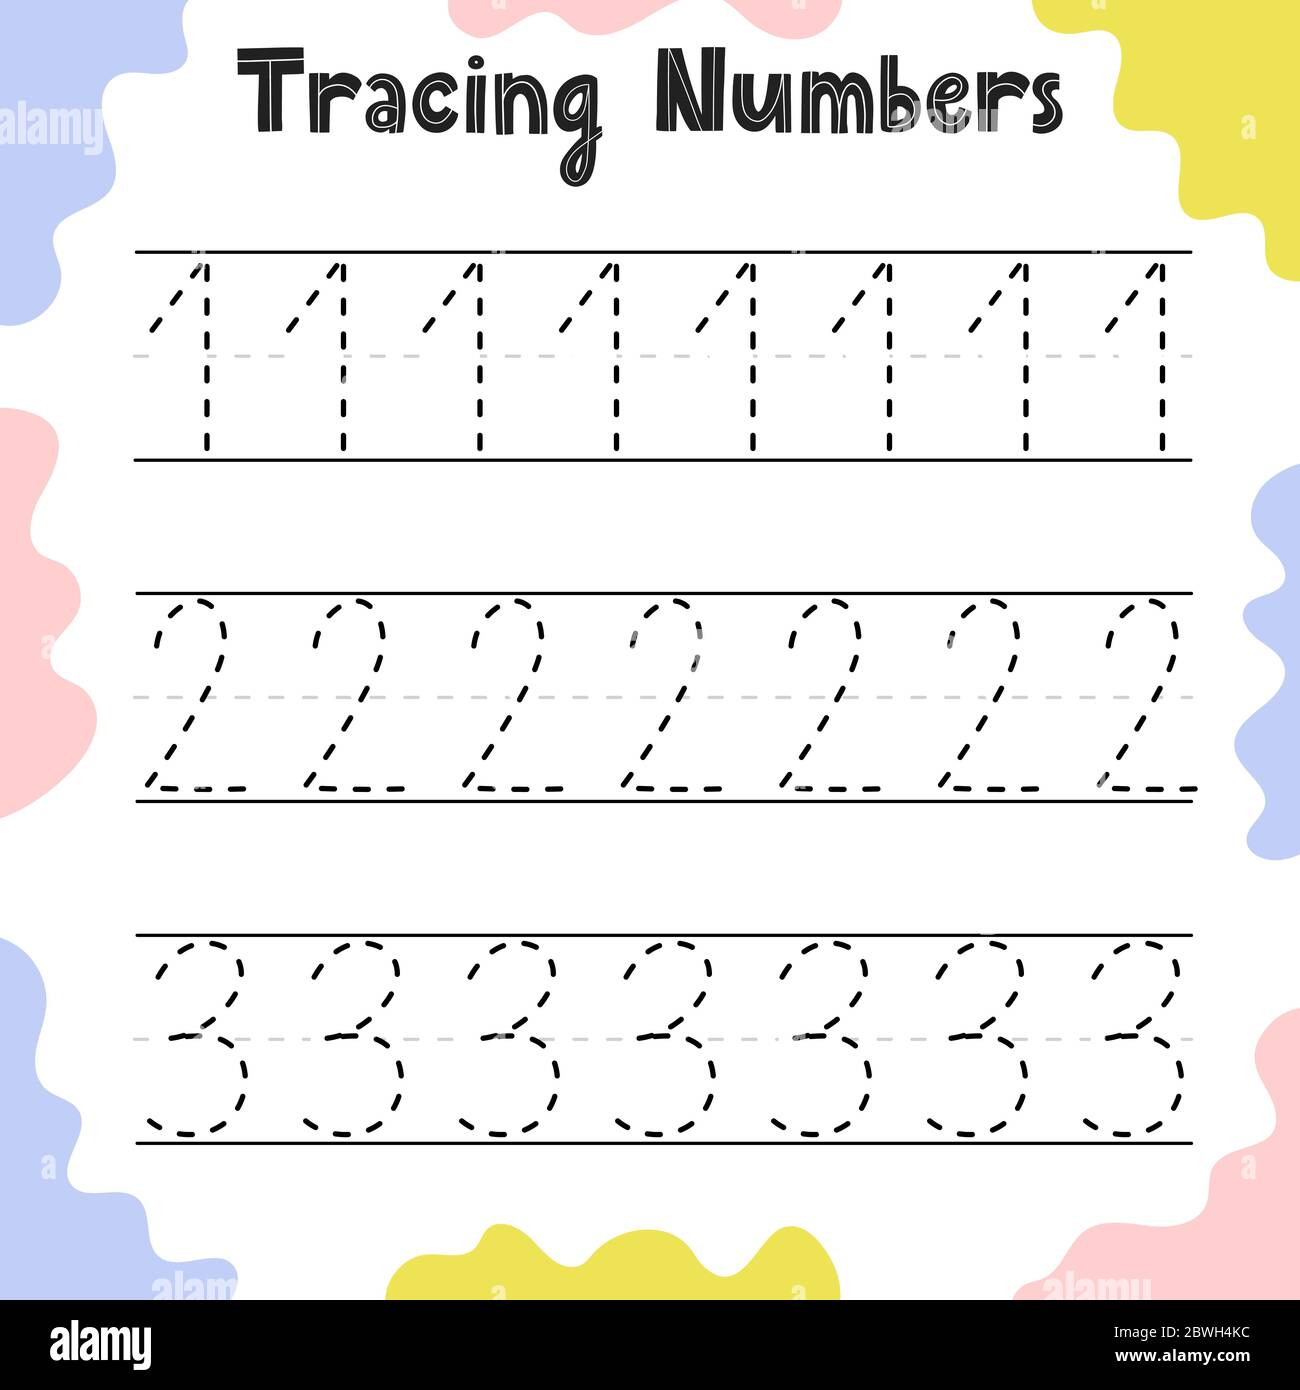 Numbers 1 2 3 Tracing Practice Worksheet For Kids Stock